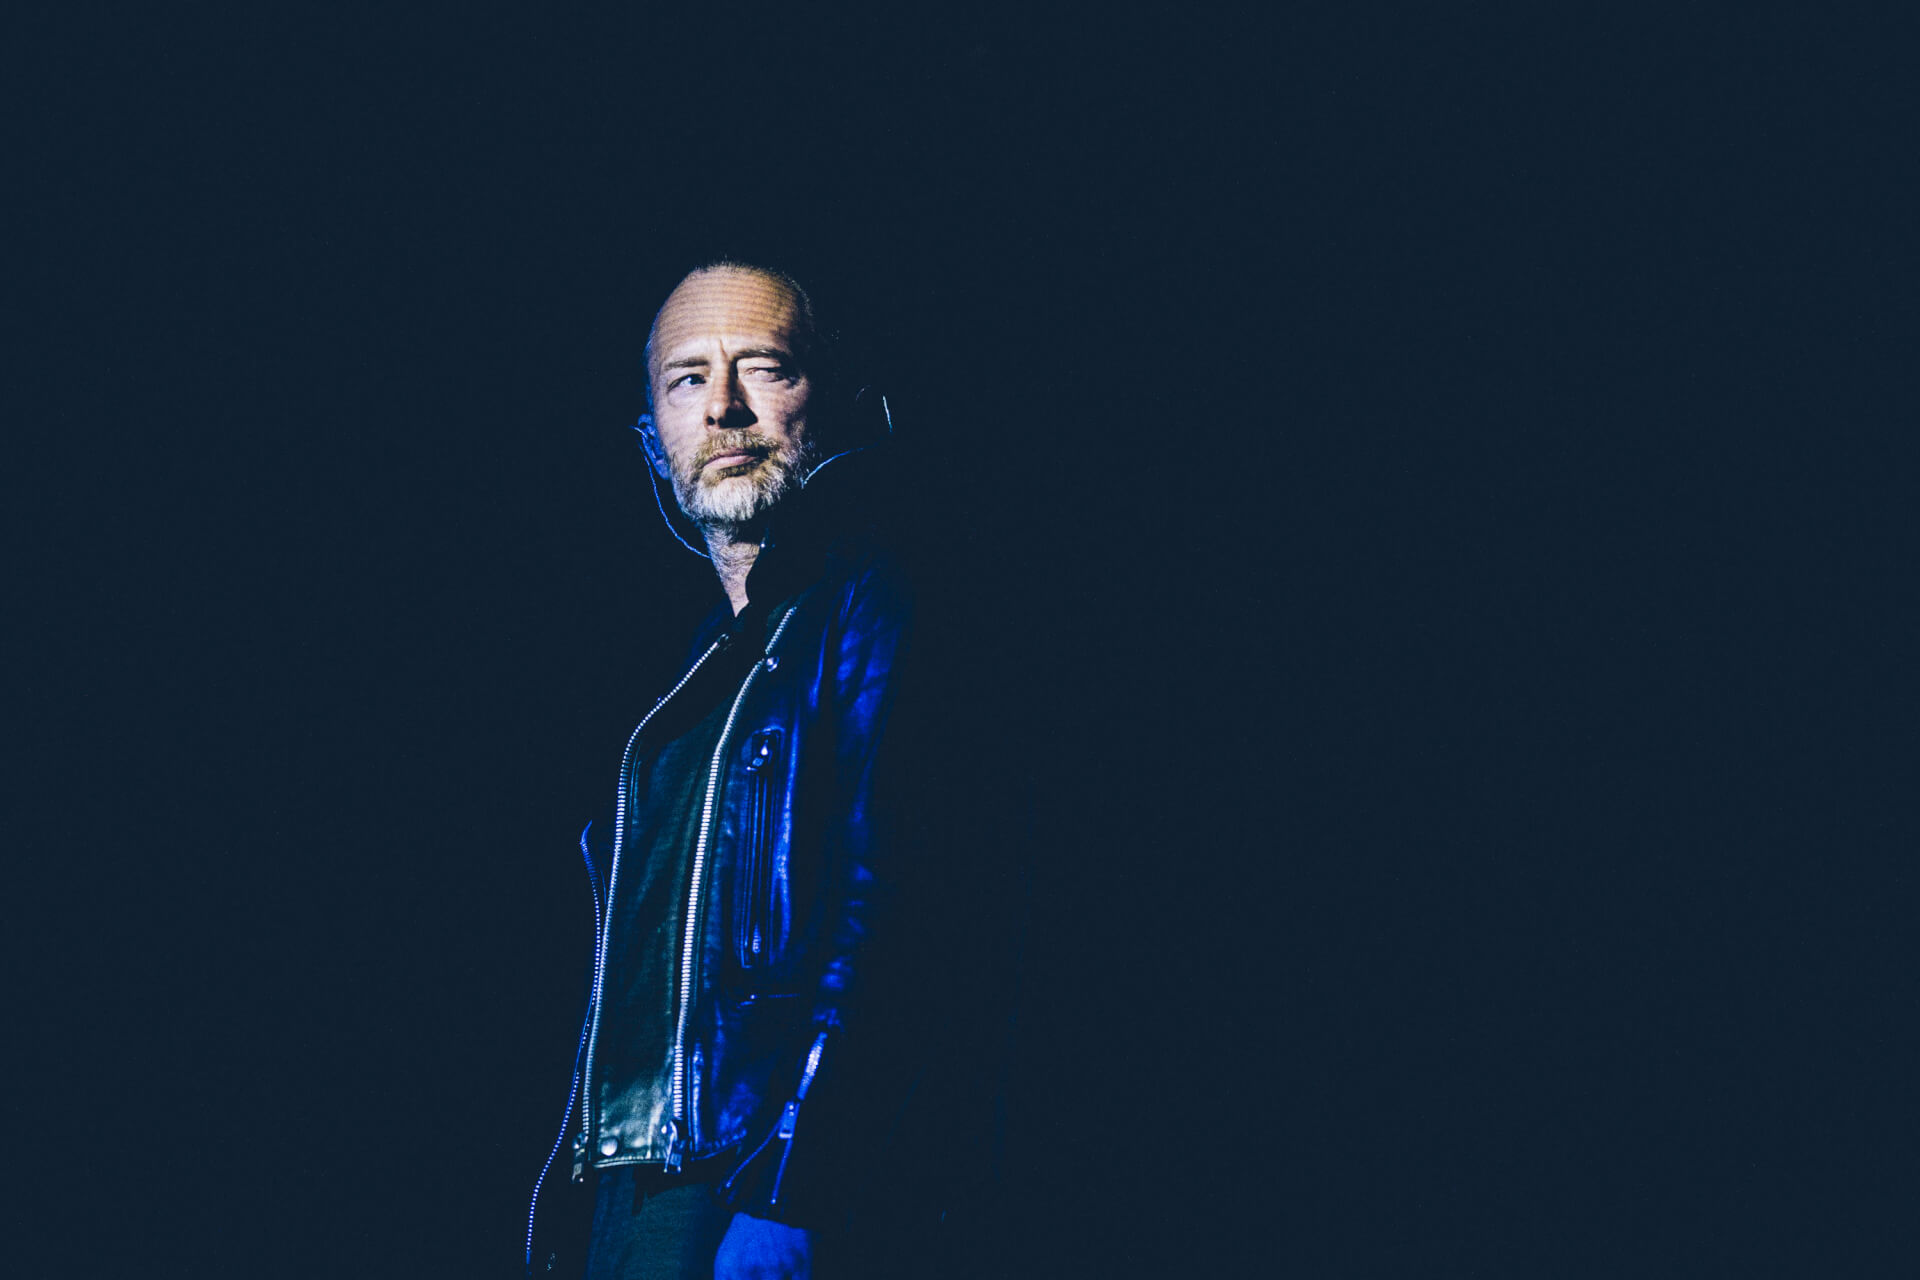 振り返るフジロック2019|THOM YORKE TOMORROW'S MODERN BOXES photo-report190822-thomyorke-1.jpg